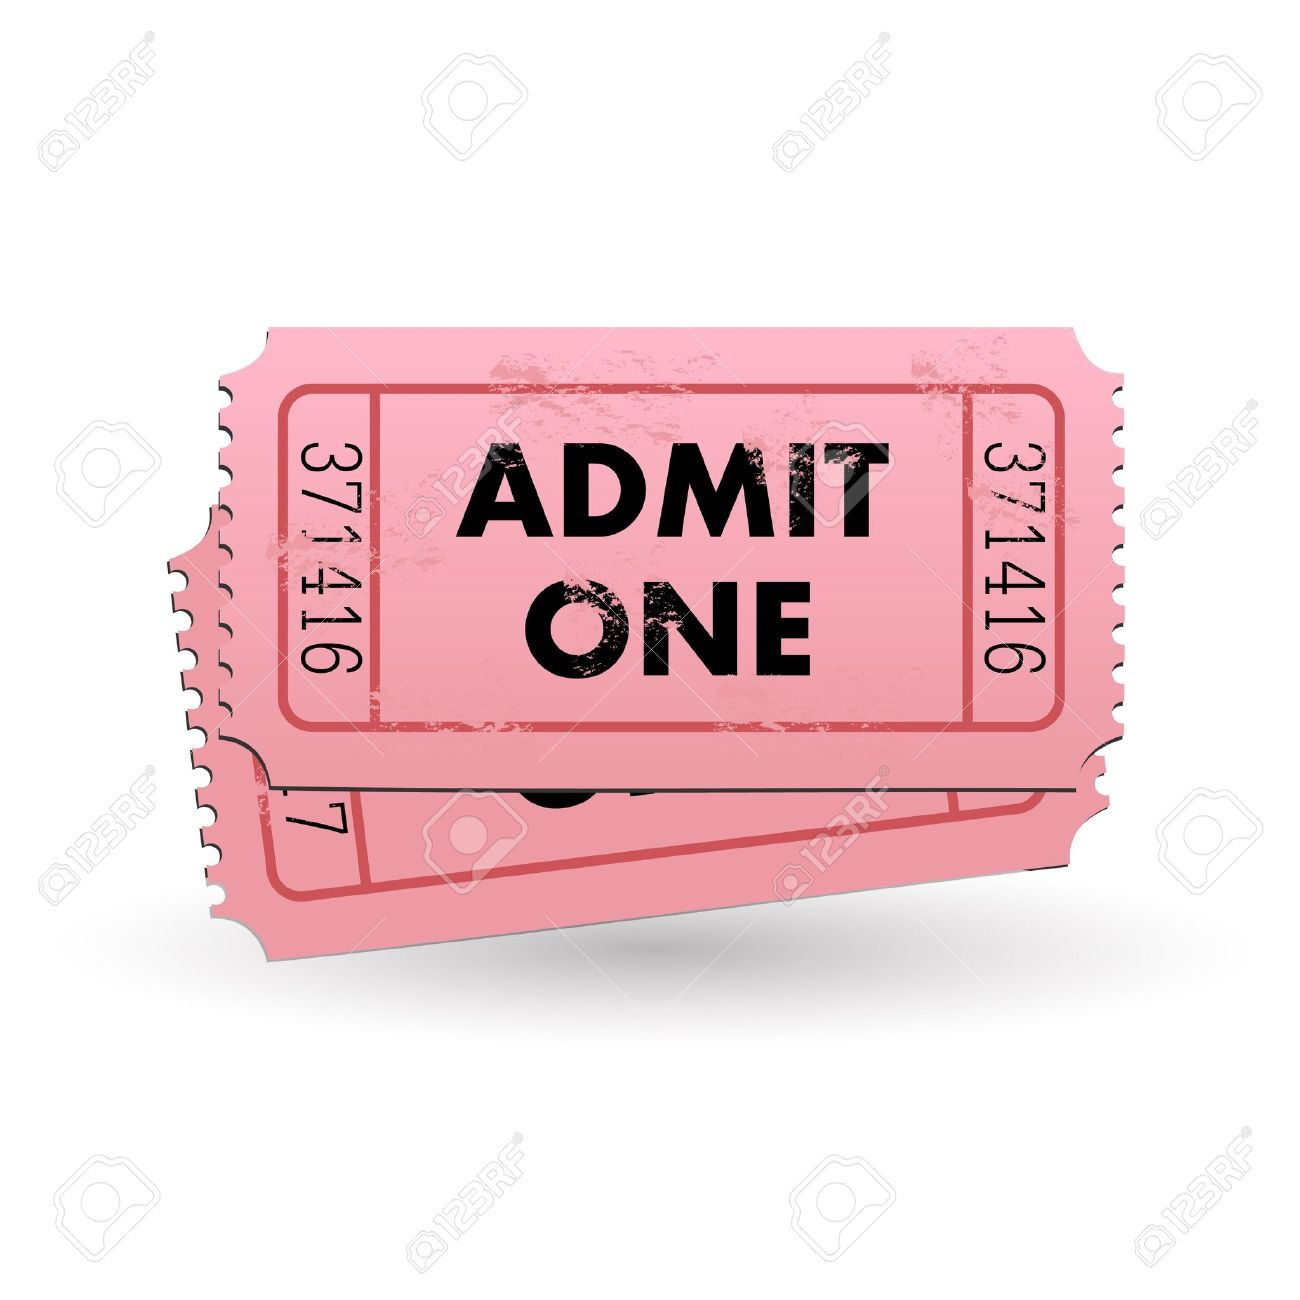 raffle stock vector illustration and royalty raffle clipart raffle image of a pink admit one ticket isolated on a white background